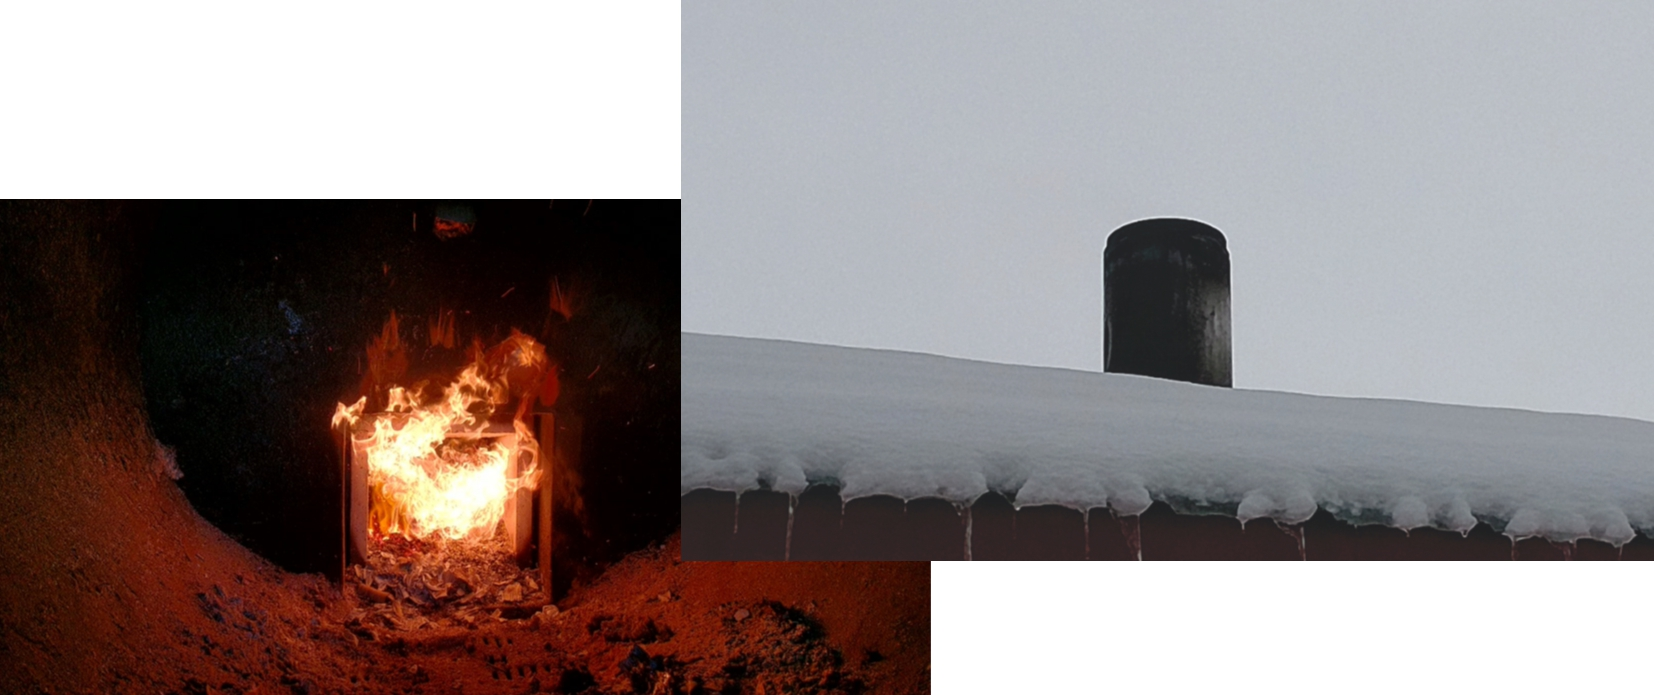 With correct setup of the primary and secondary airs, there is no smells nor visible smoke at the chimney